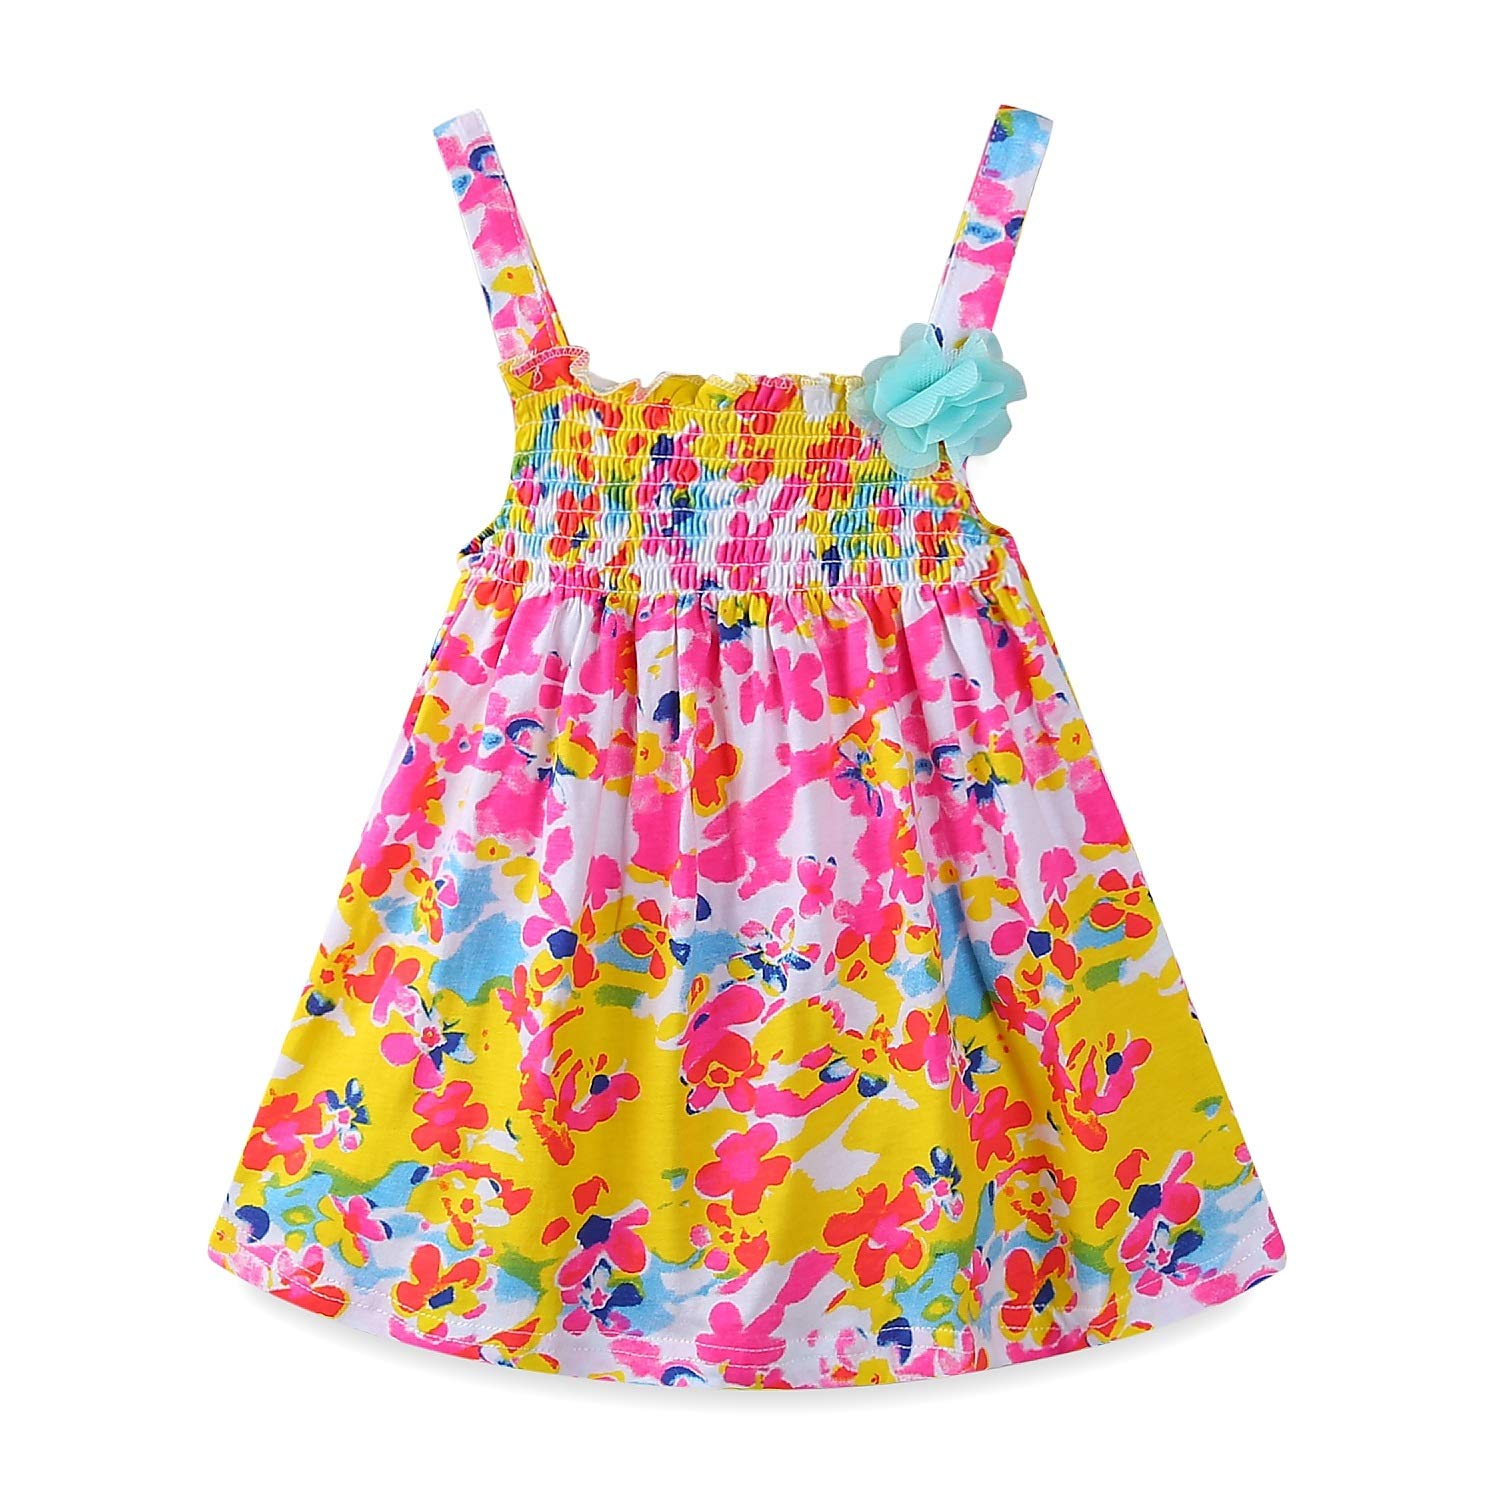 0dce6ee93c39 Amazon.com  Mud Kingdom Baby Girl Clothes Summer Floral Slip Dresses   Clothing